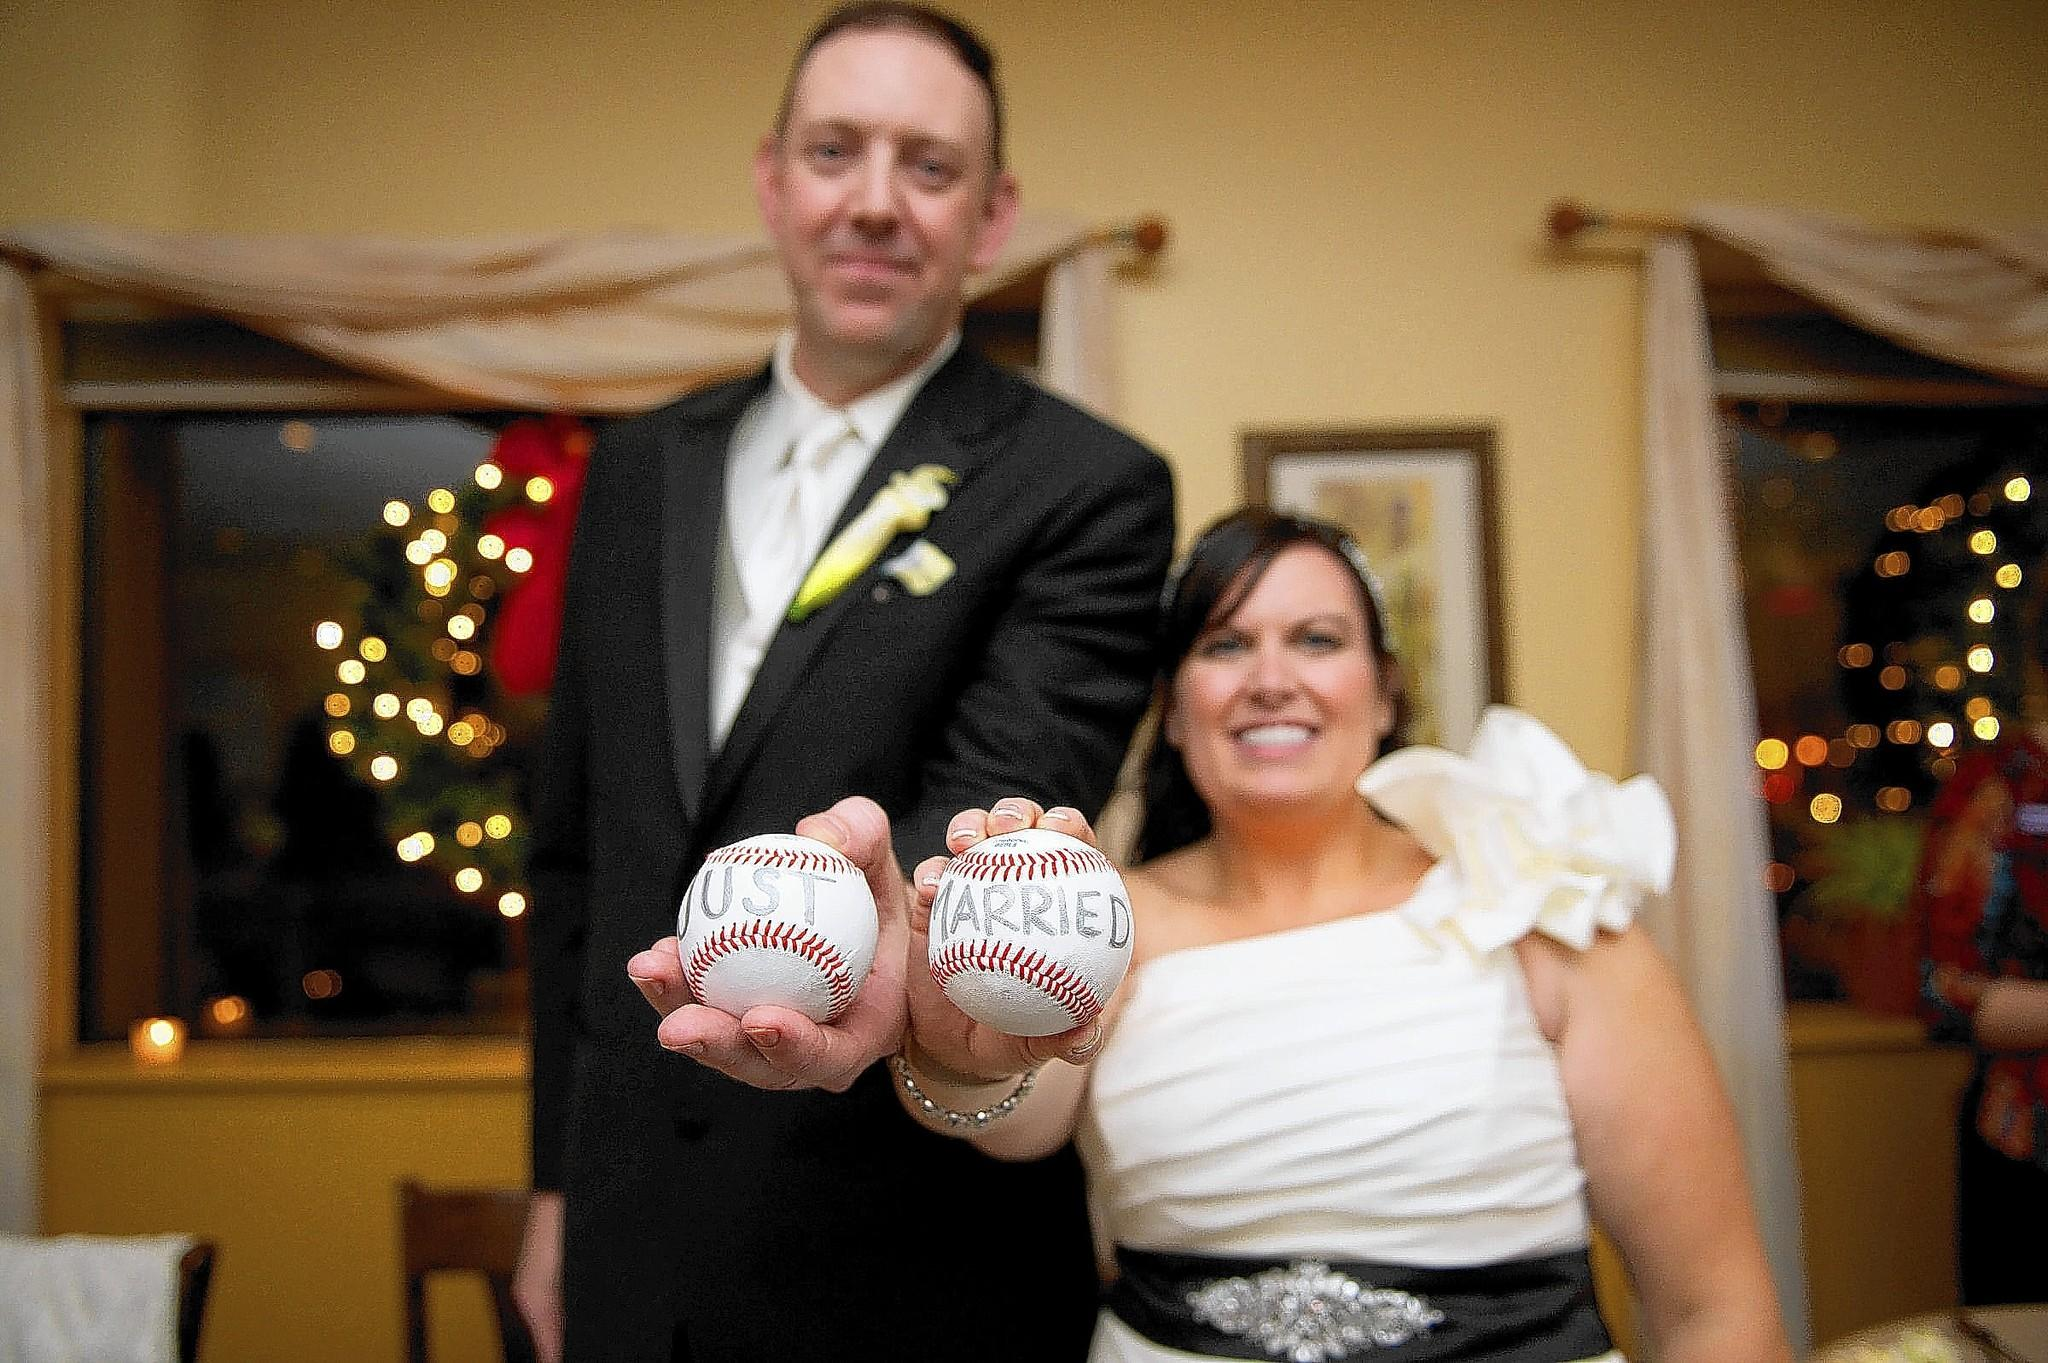 The couple's names are Renee Coshin and Peter Coolbaugh. Photo credit: Gobrail Photography.